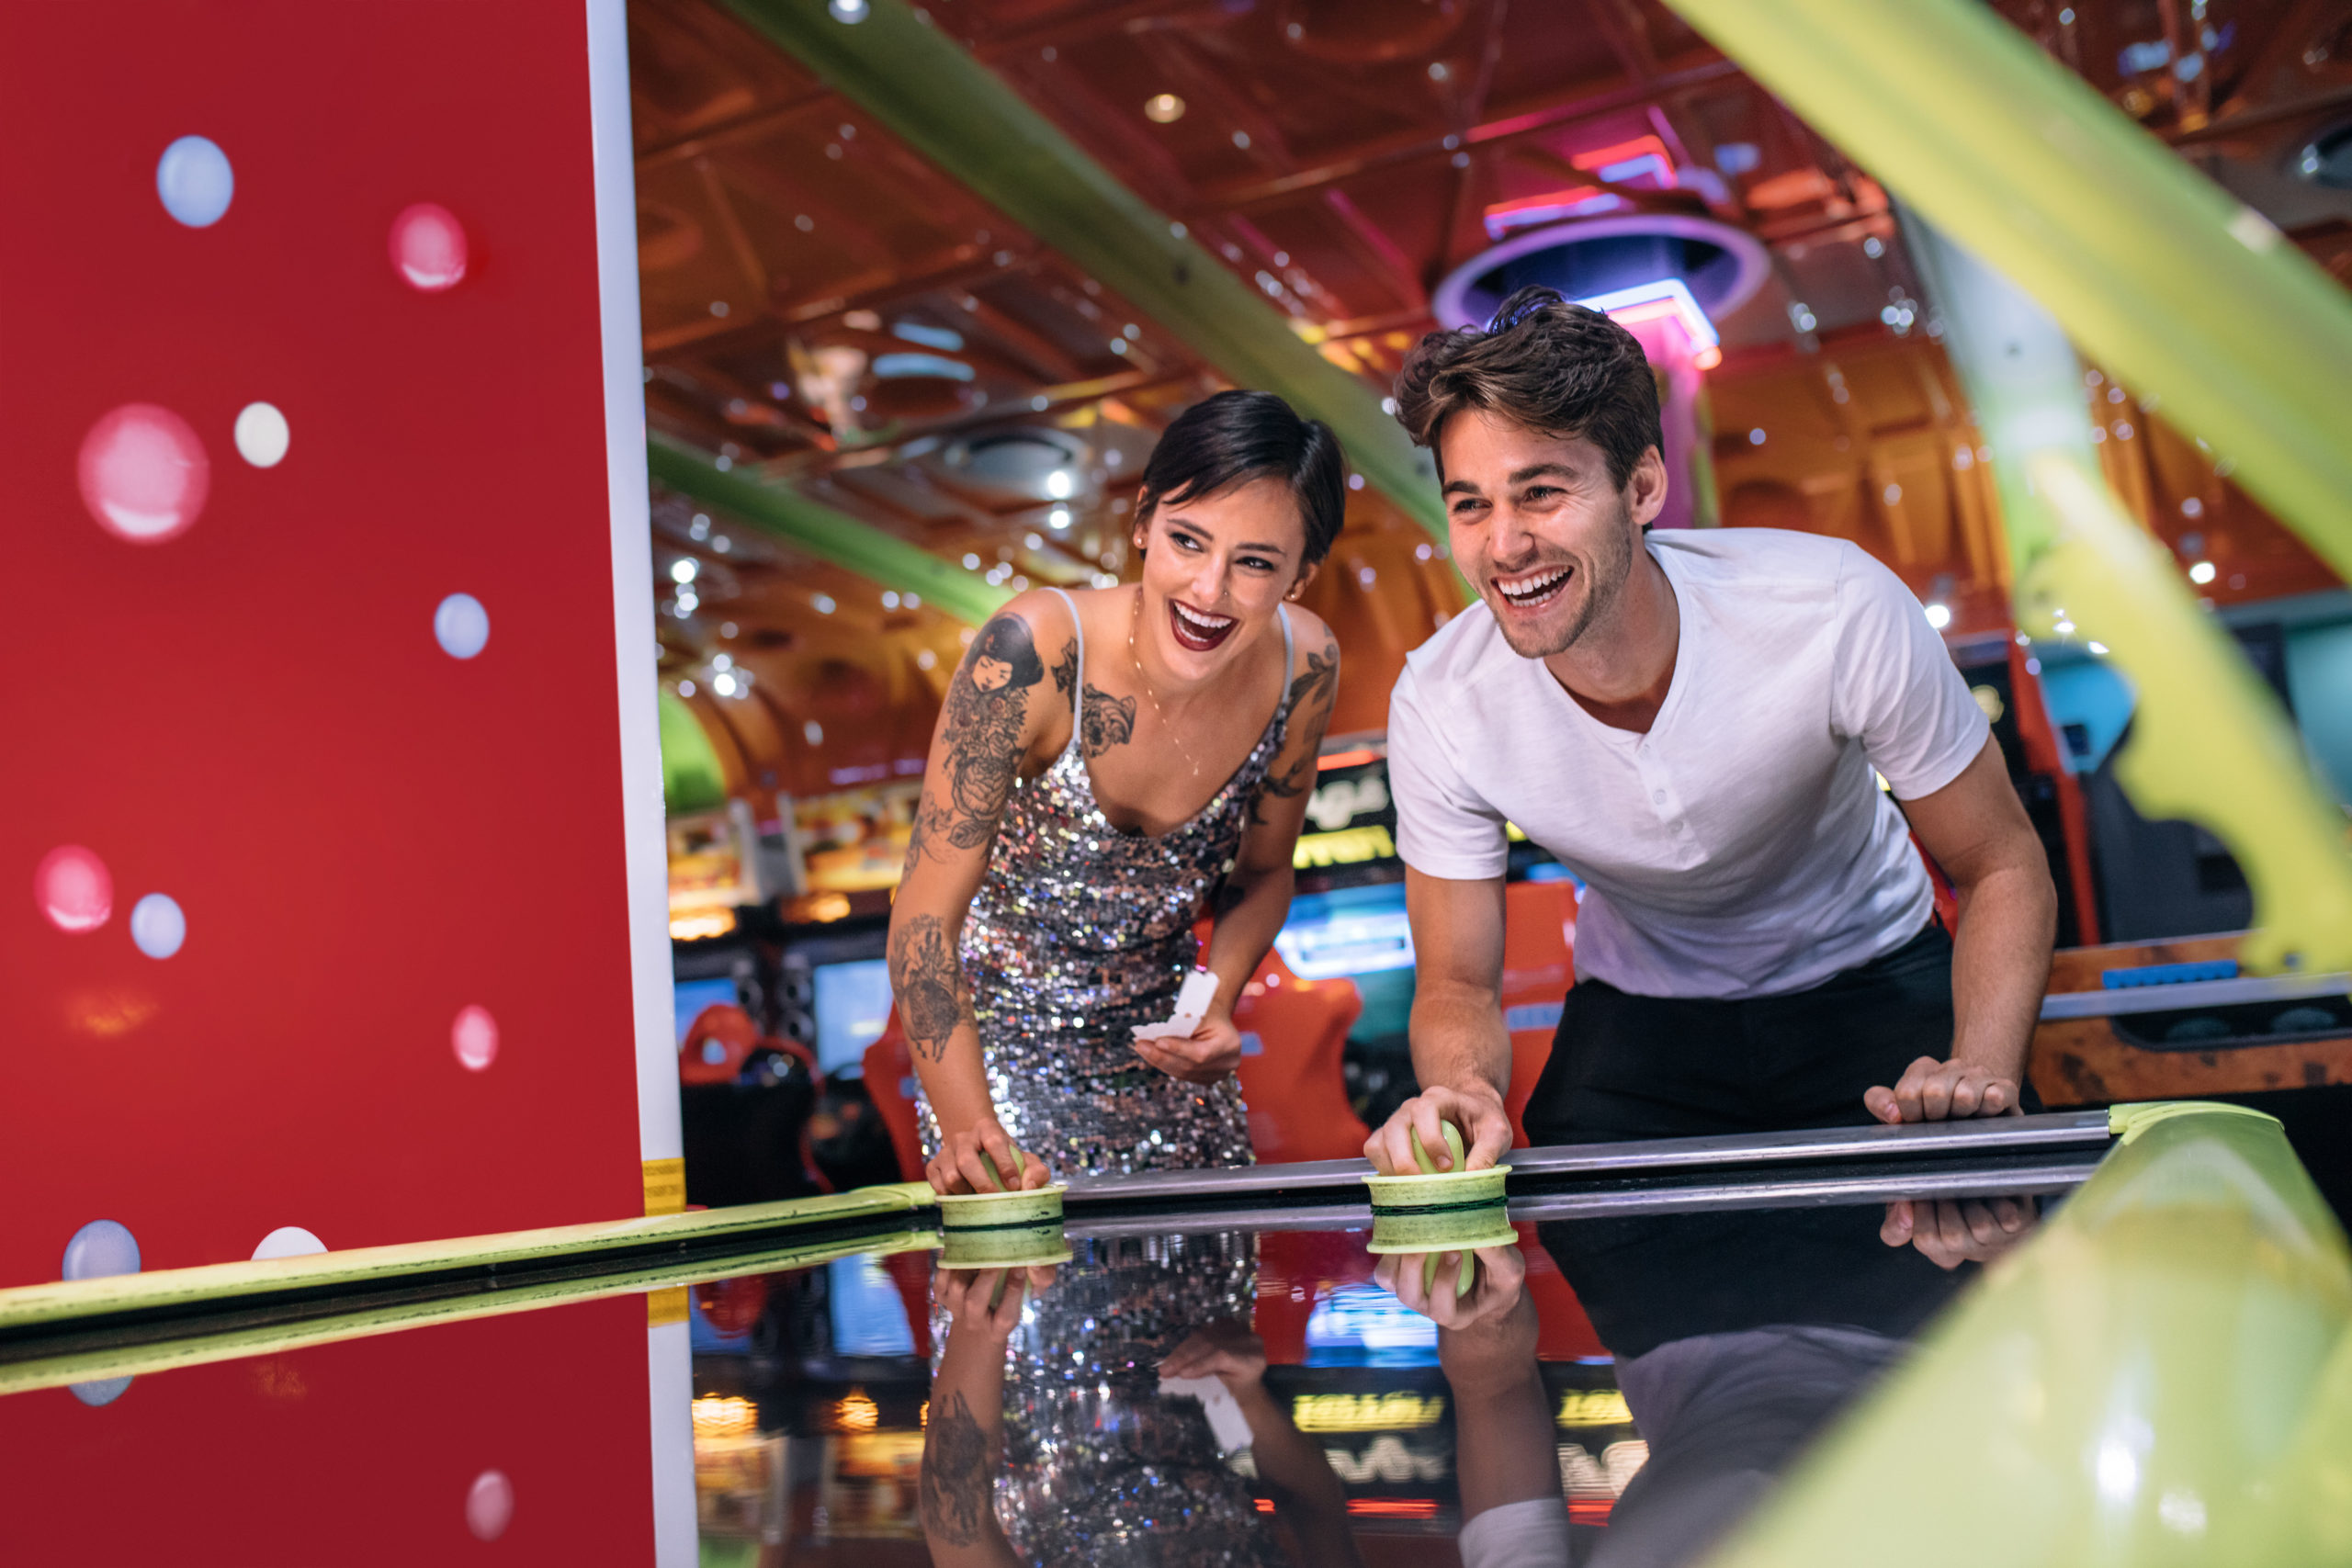 Friends playing air hockey at a gaming parlor | things to do in Hanover, MD